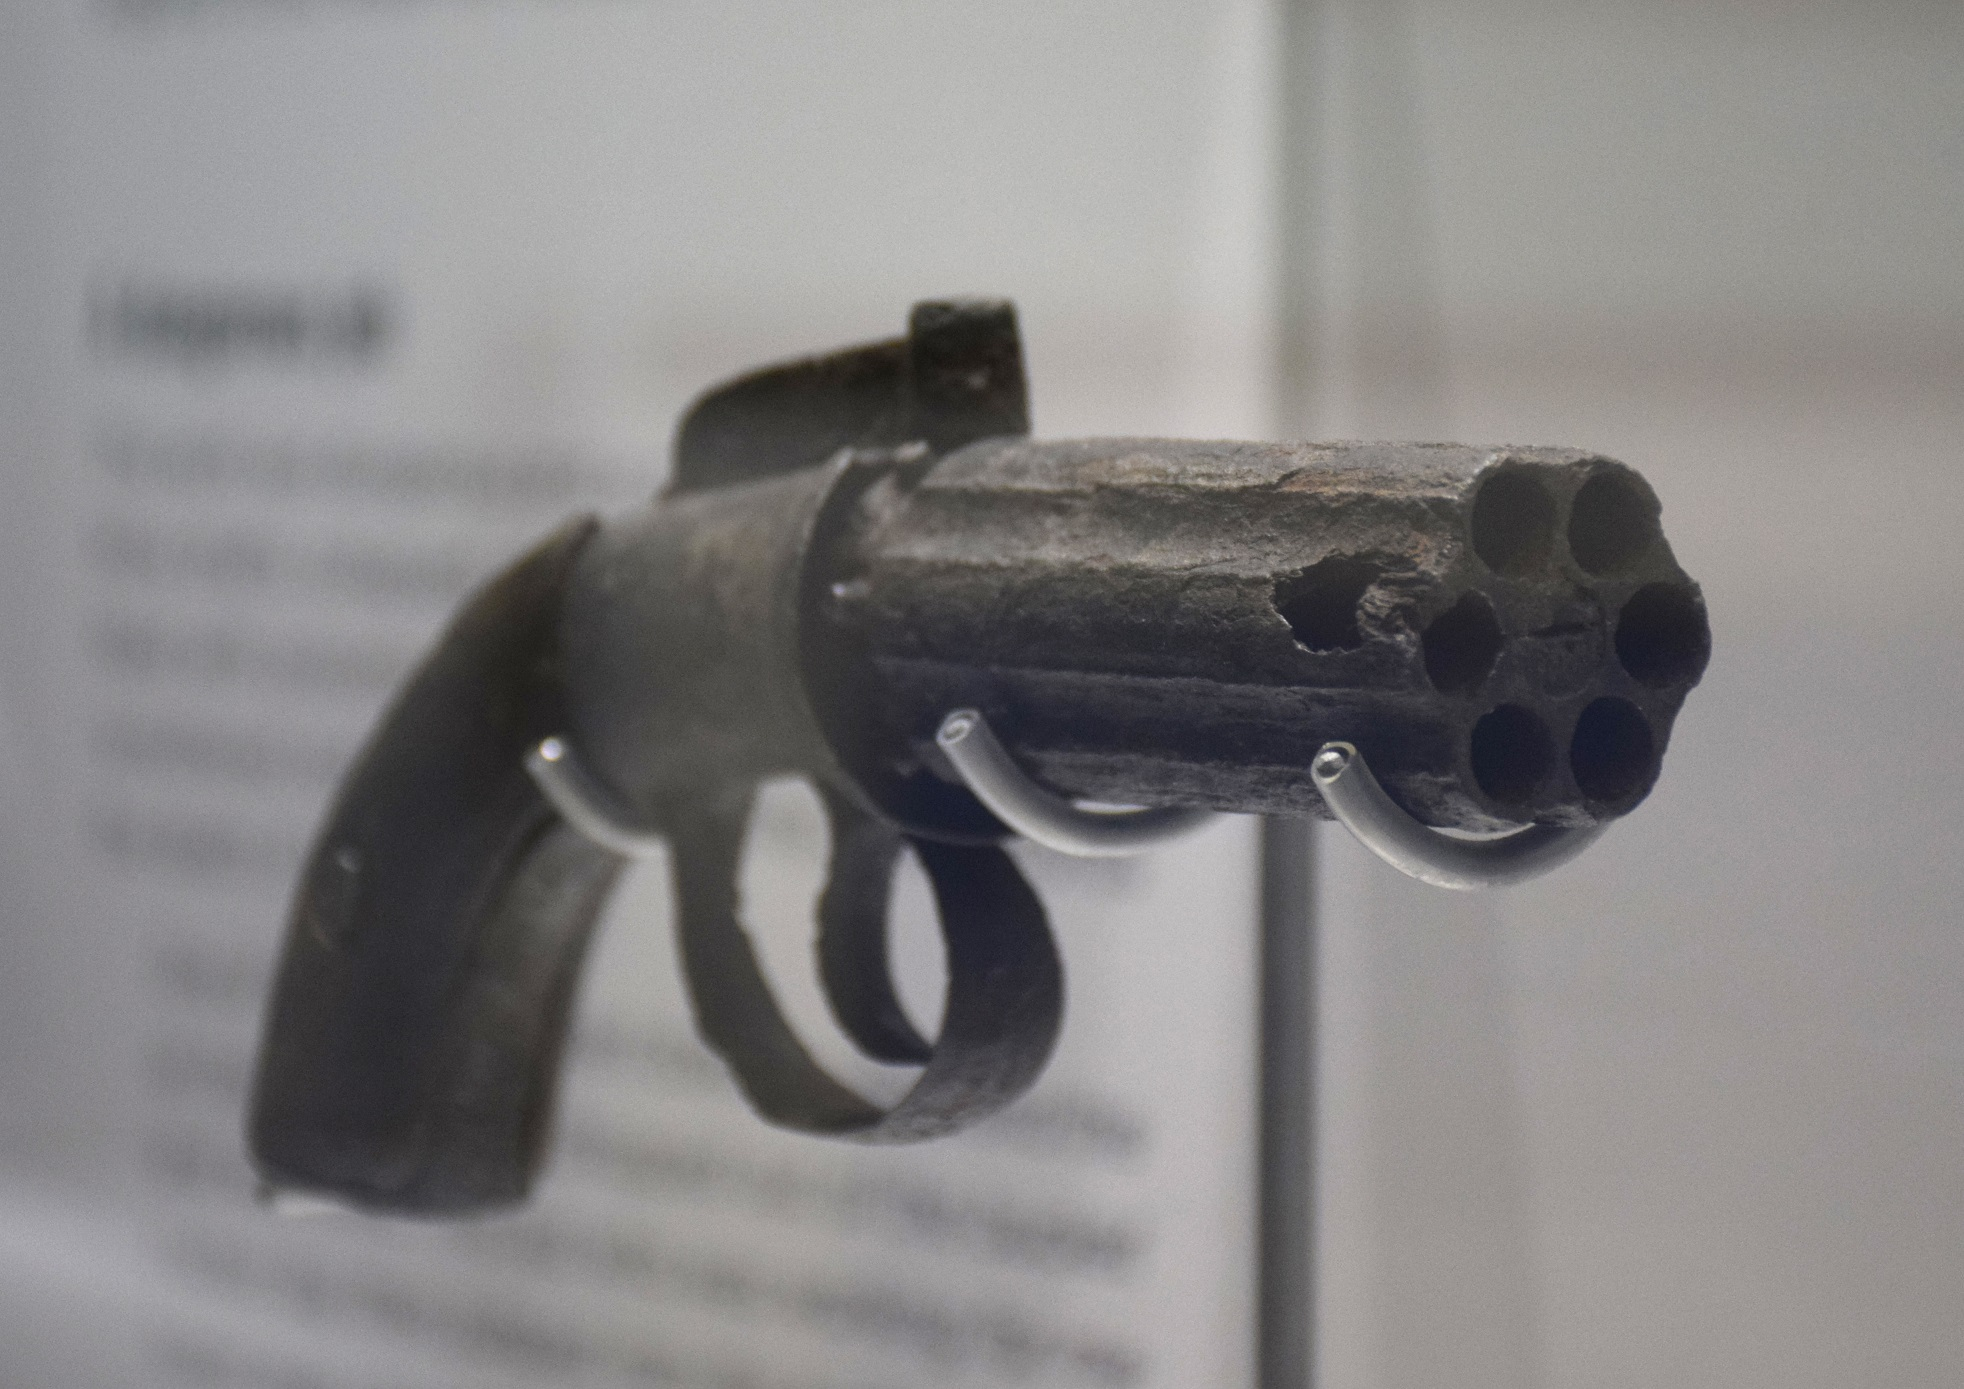 Pistol from the Eurkea Lead Ballarat. On display in 'Gold Rush: 20 Objects, 20 Stories' at Old Treasury Building.